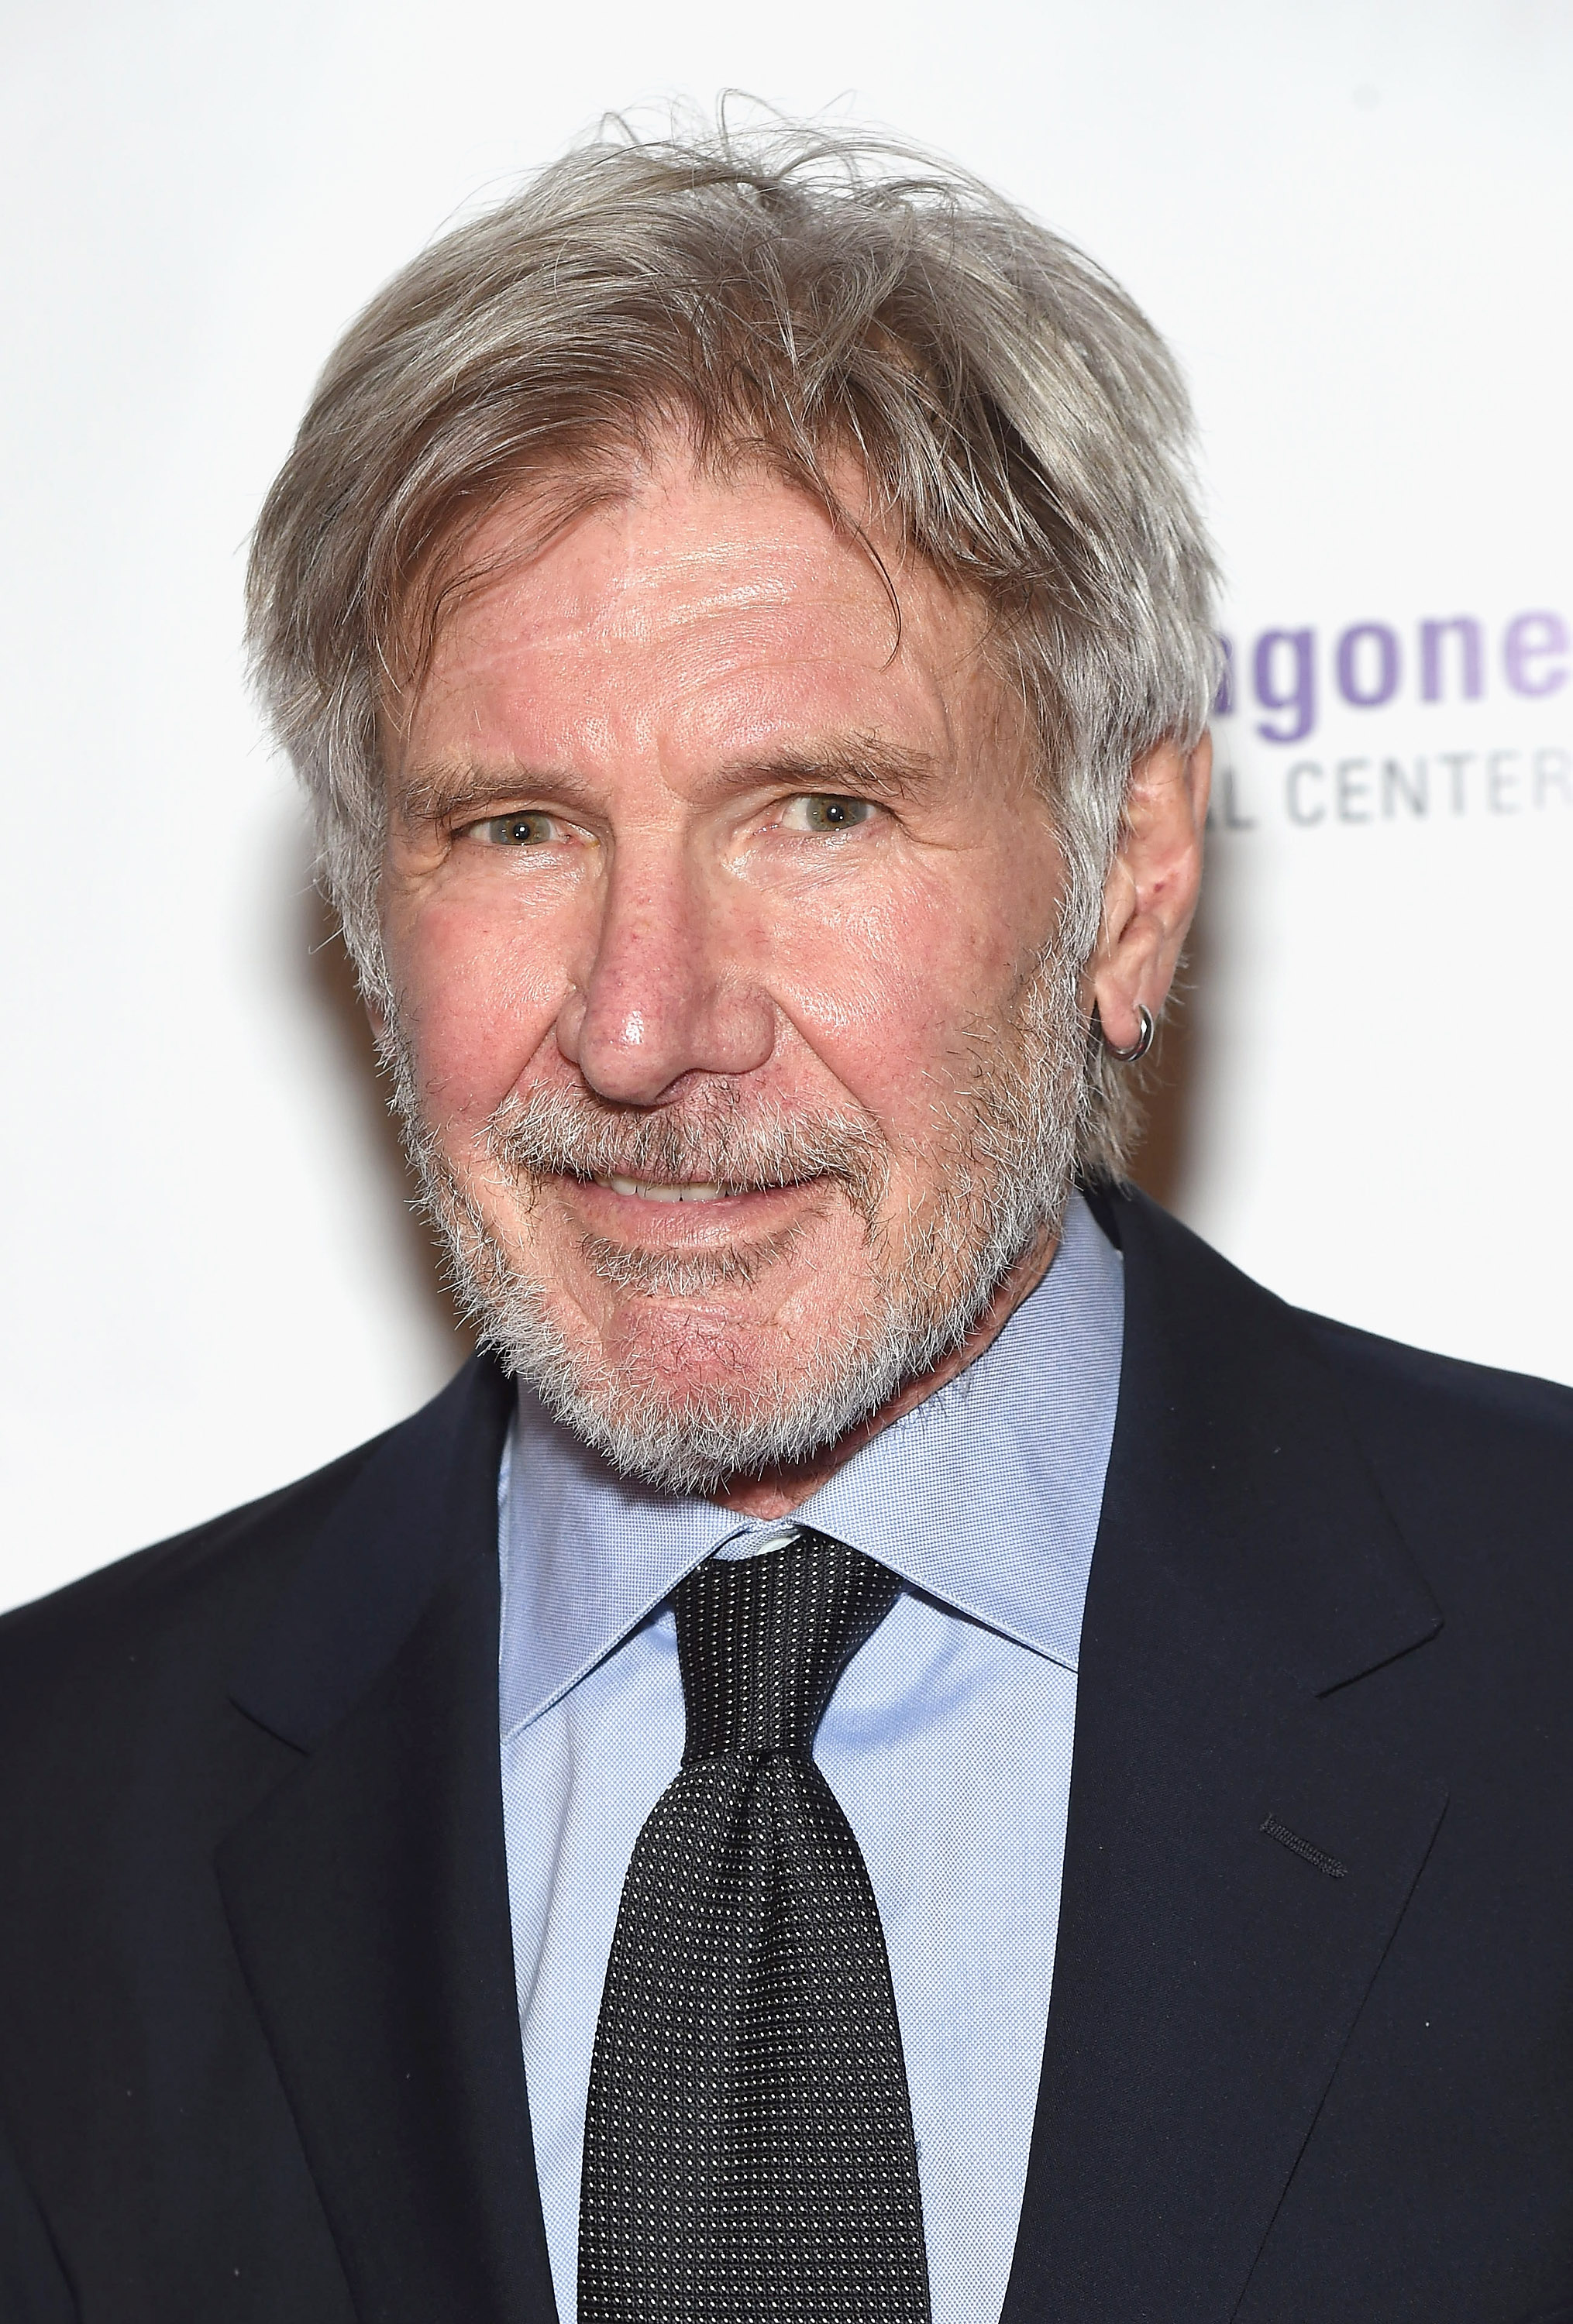 Harrison Ford Tearfully Reveals Daughter Georgia Has Epilepsy